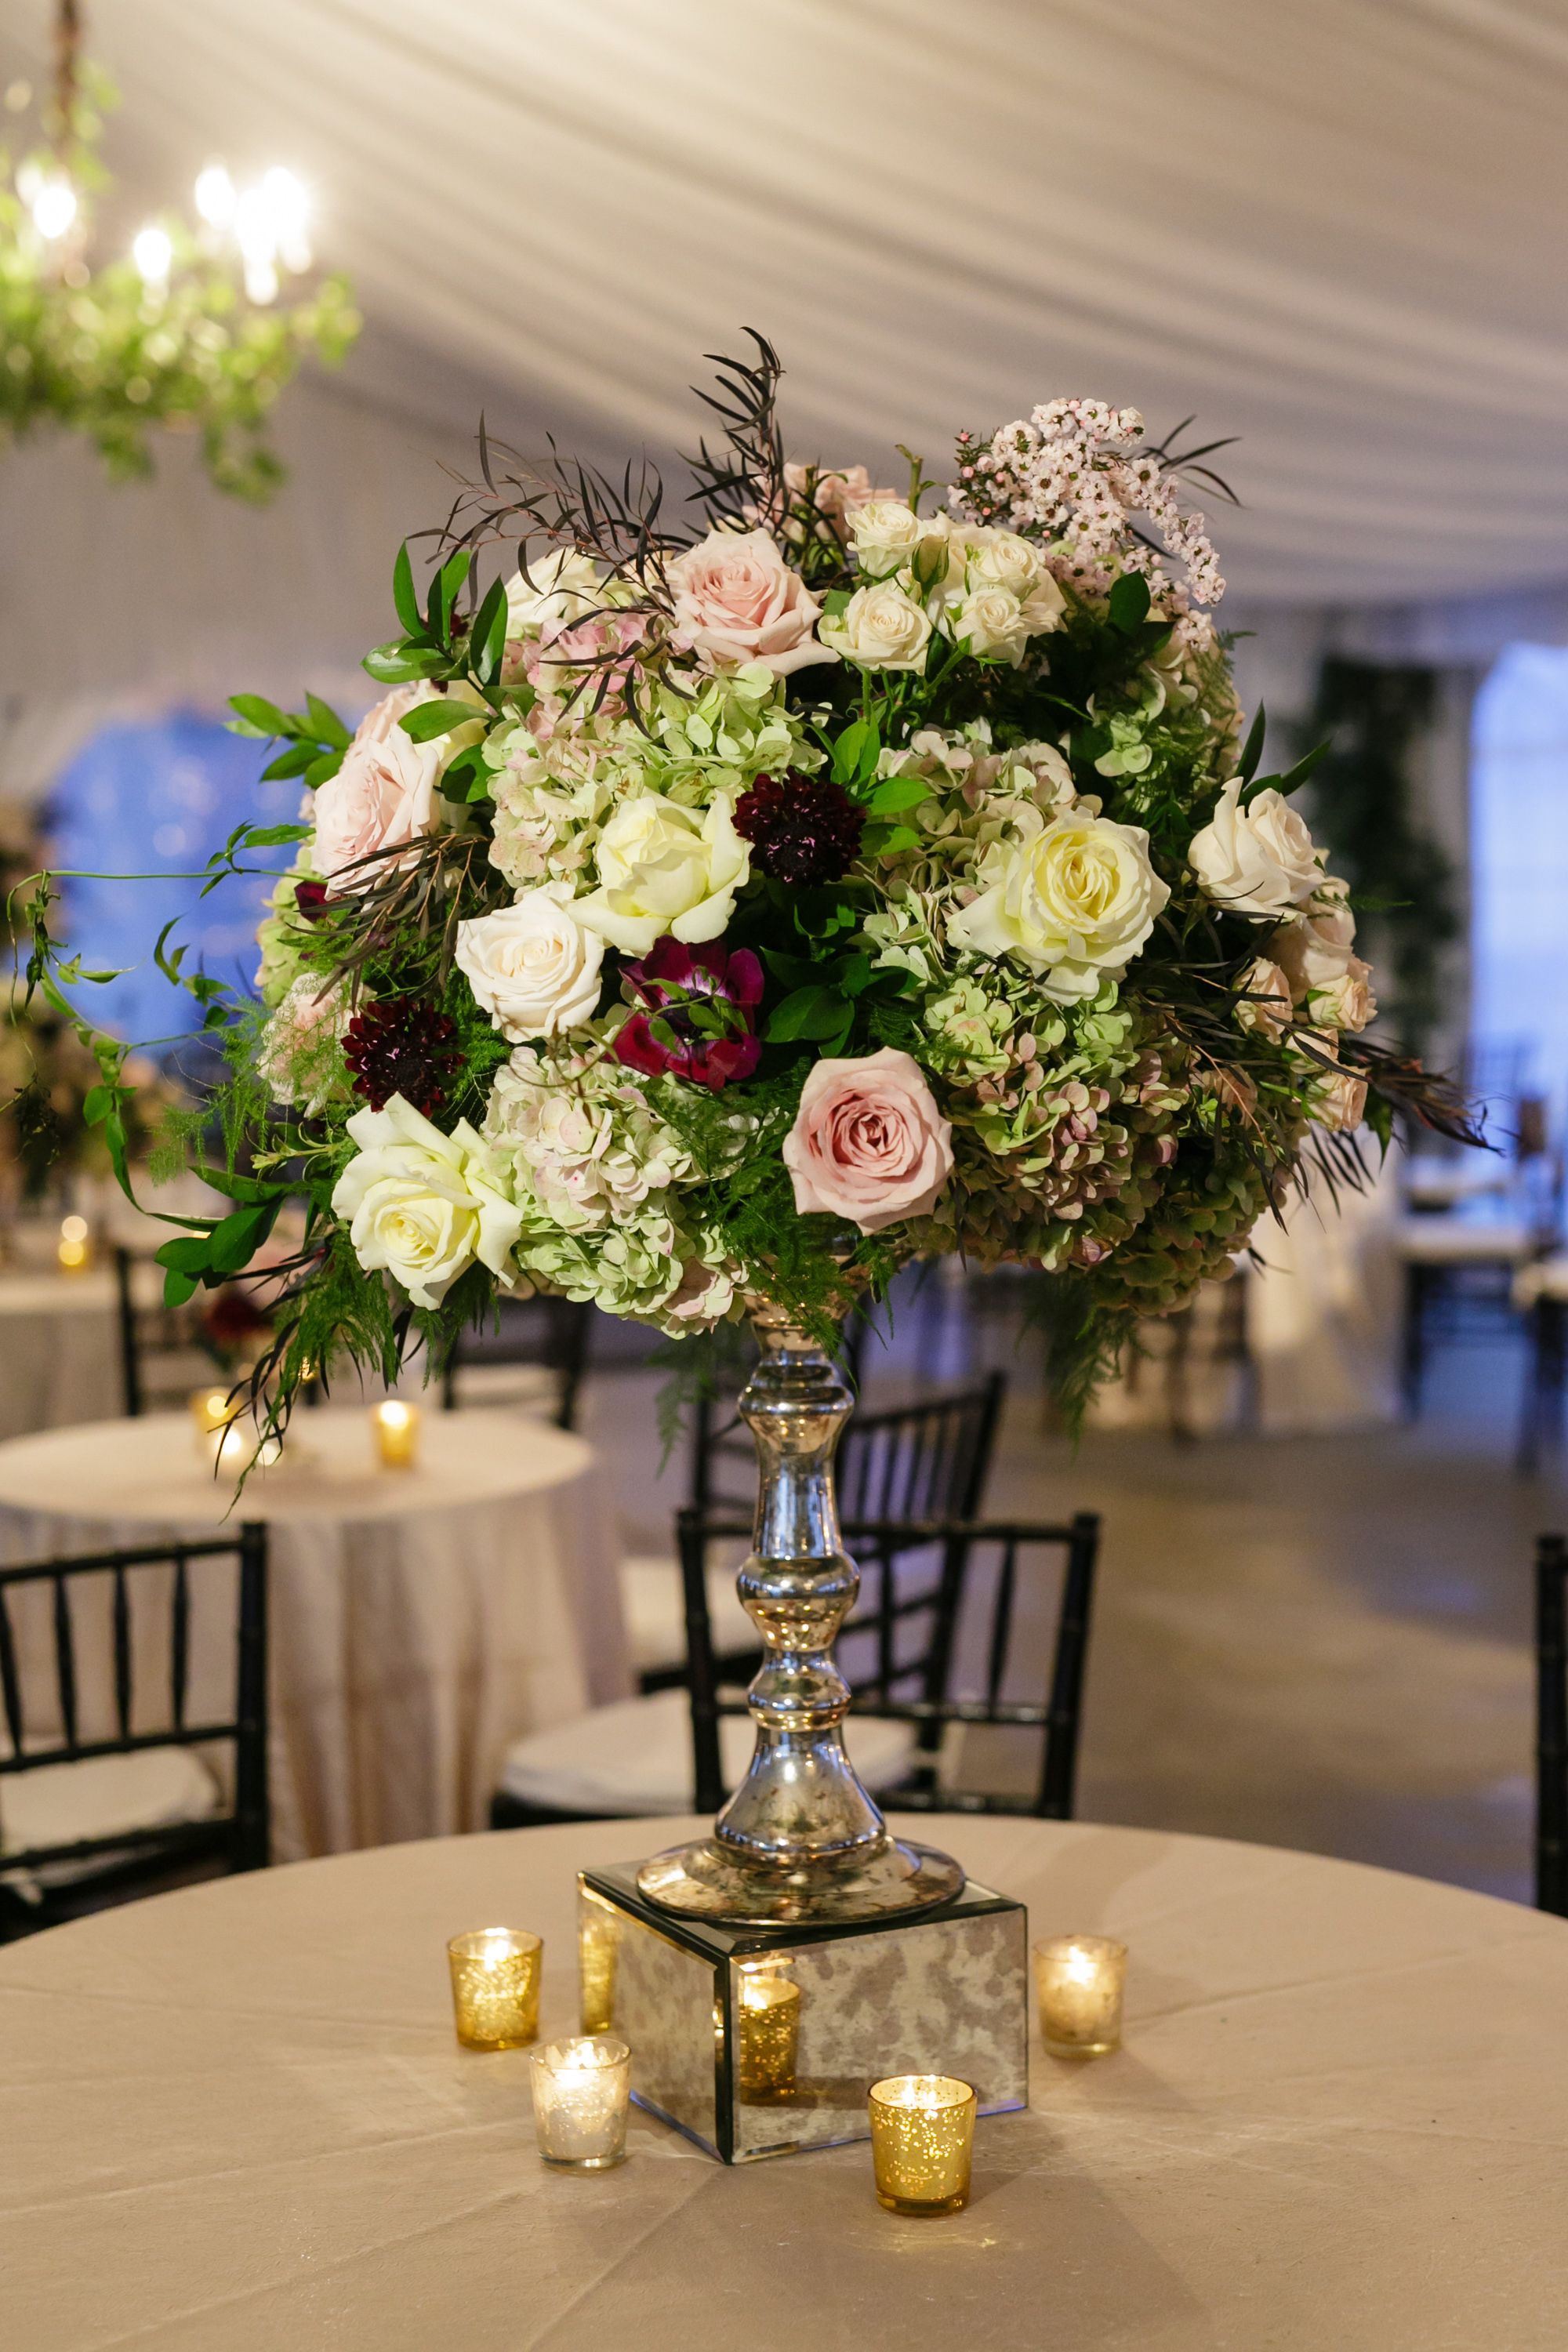 Greer Gattuso Photography // Kim Starr Wise Floral Events// Old Ursuline Convent // New Orleans Wedding //